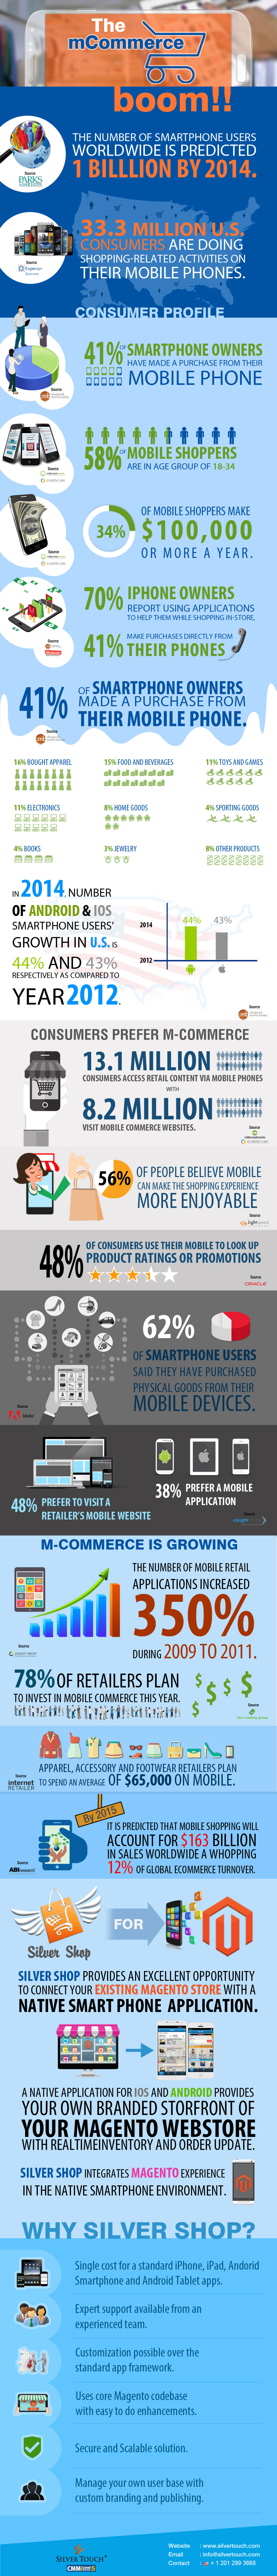 mCommerce - Mobile Commerce Infographic